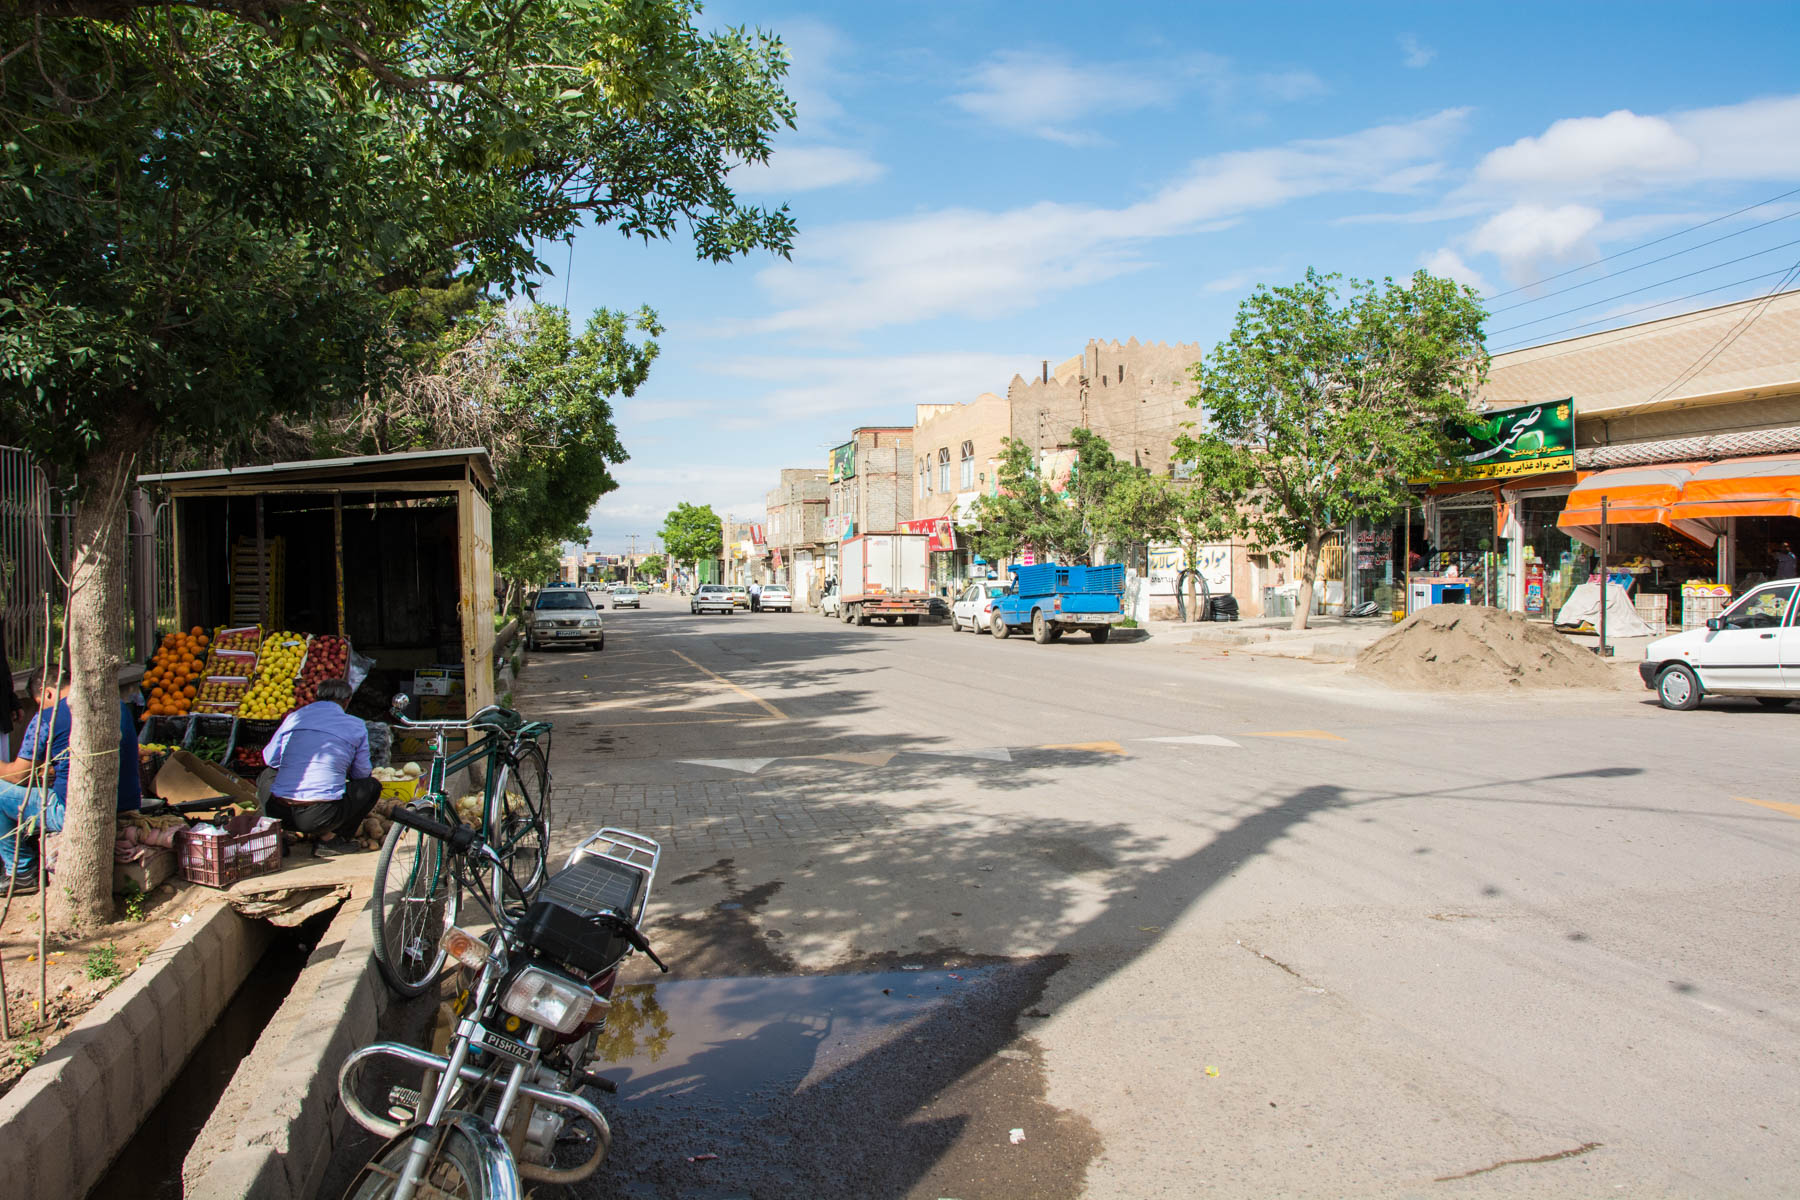 From Mashhad to Torbat-e Jam: The taxi drop-off point in the center of Torbat-e Jam, Iran.